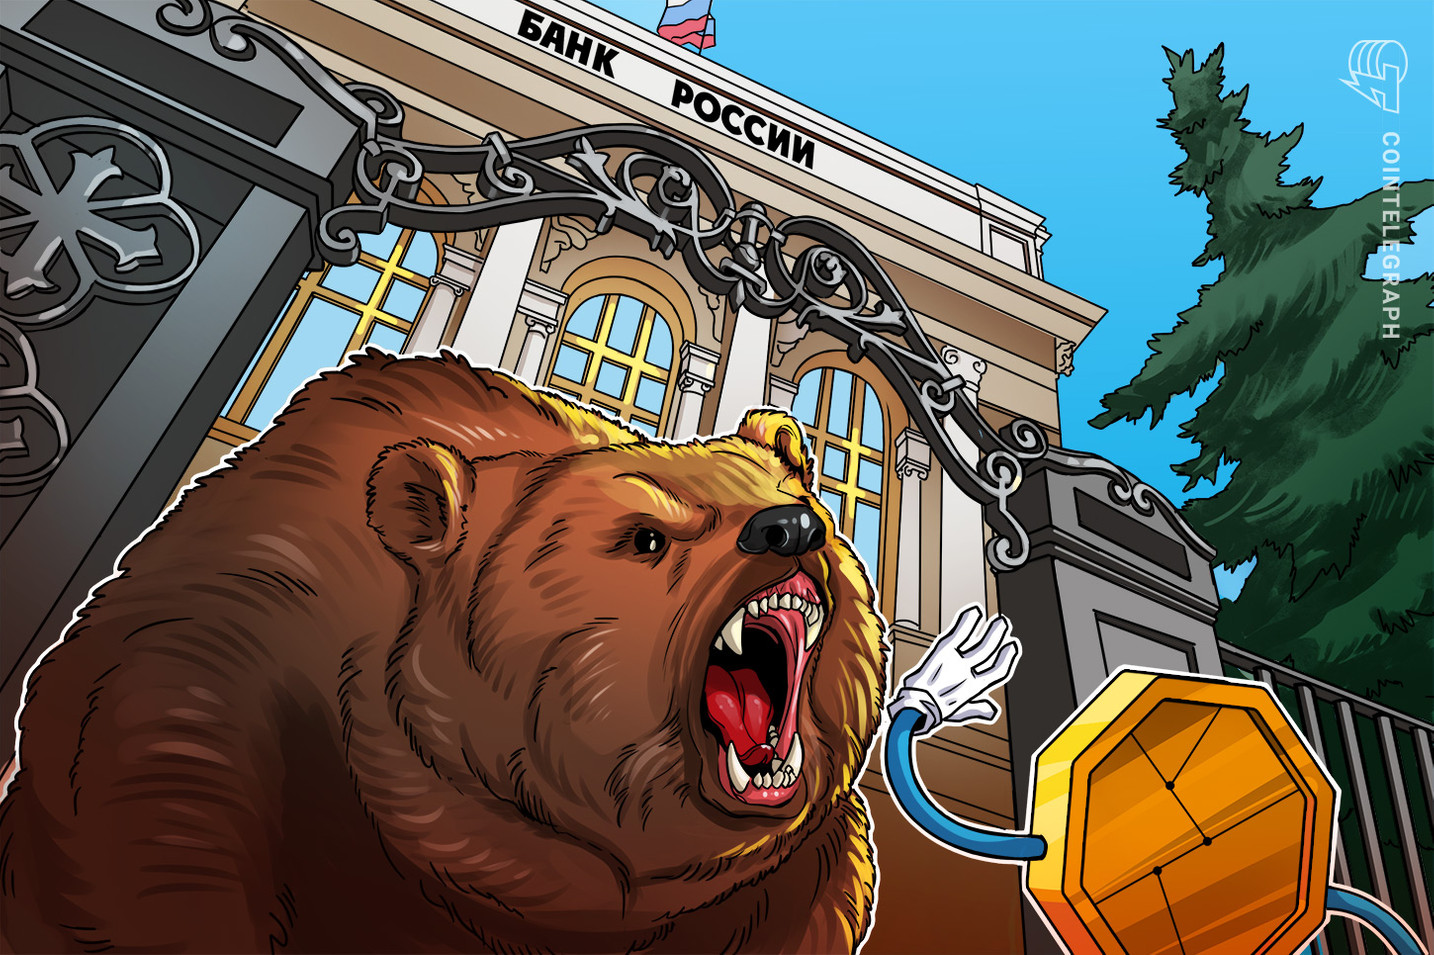 Bank of Russia asks stock exchanges not to list crypto-related firms